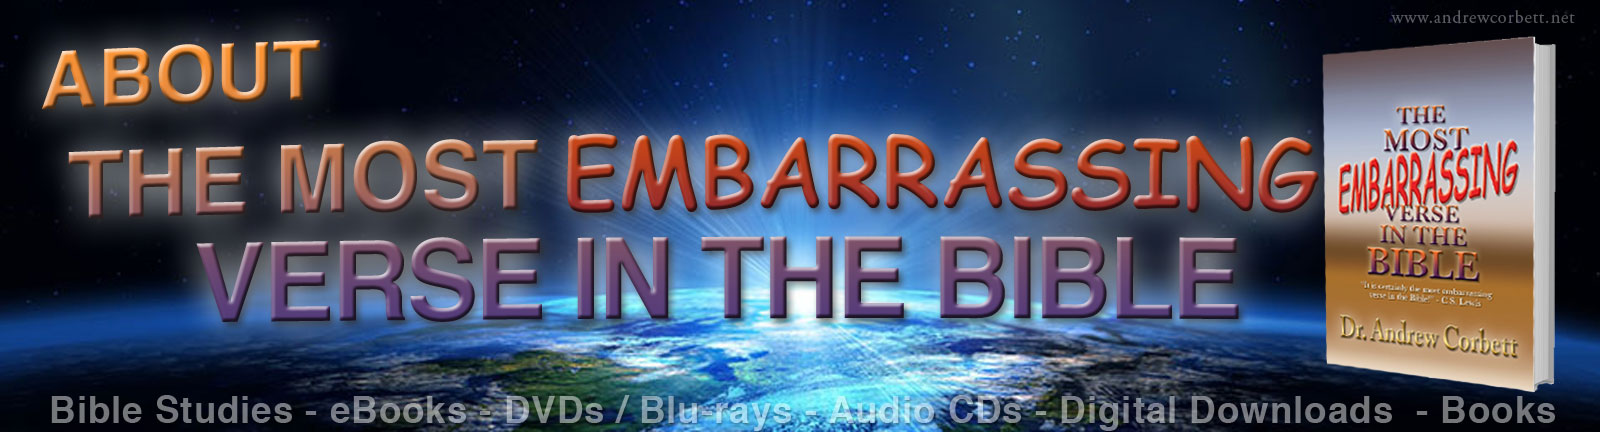 About THE MOST EMBARRASSING VERSE IN THE BIBLE, by Dr. Andrew Corbett